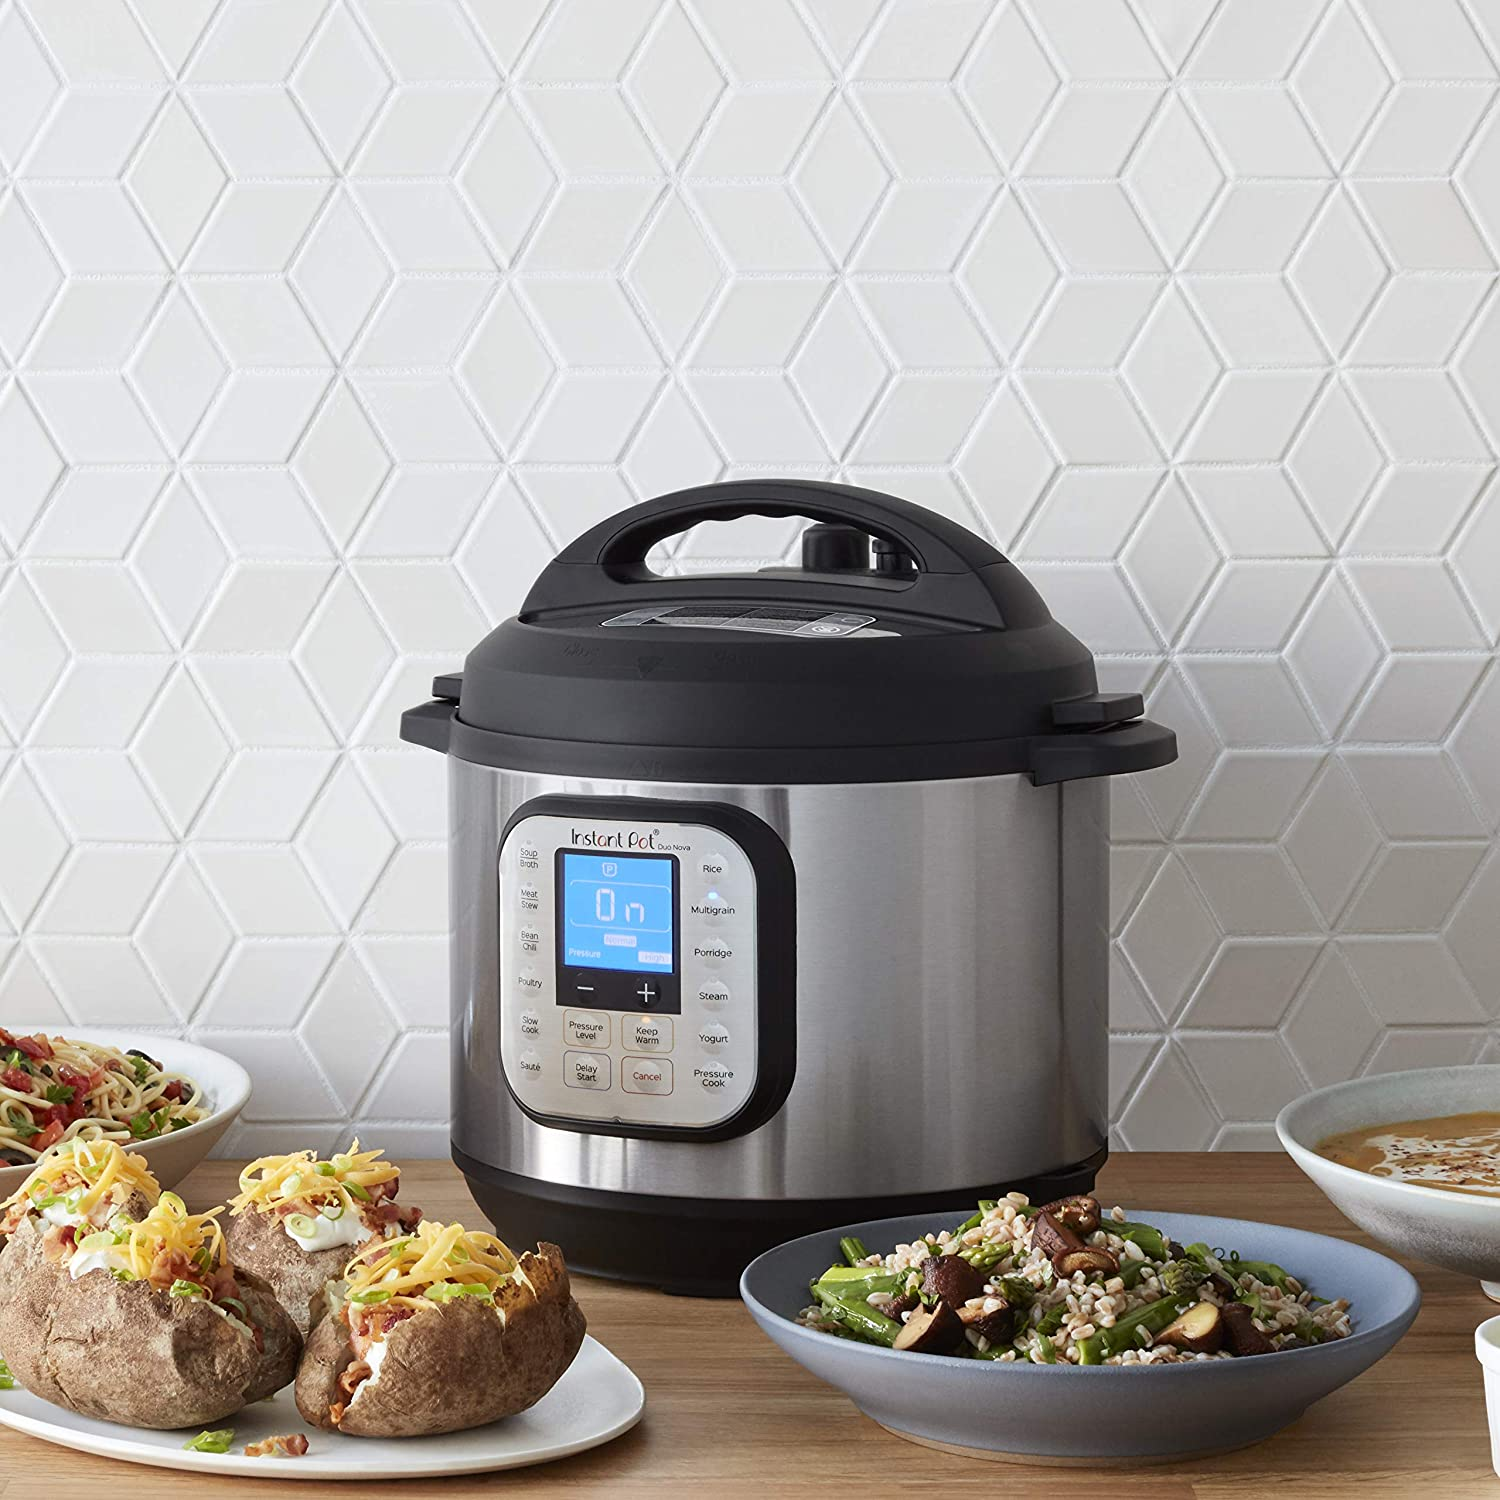 Instant Pot® DuoTM NovaTM 6-Quart 7-in-1, One-Touch Multi-Use Programmable Pressure Cooker, Slow Cooker, Rice Cooker, Steamer, Sauté, Yogurt Maker and Warmer with New Easy Seal Lid